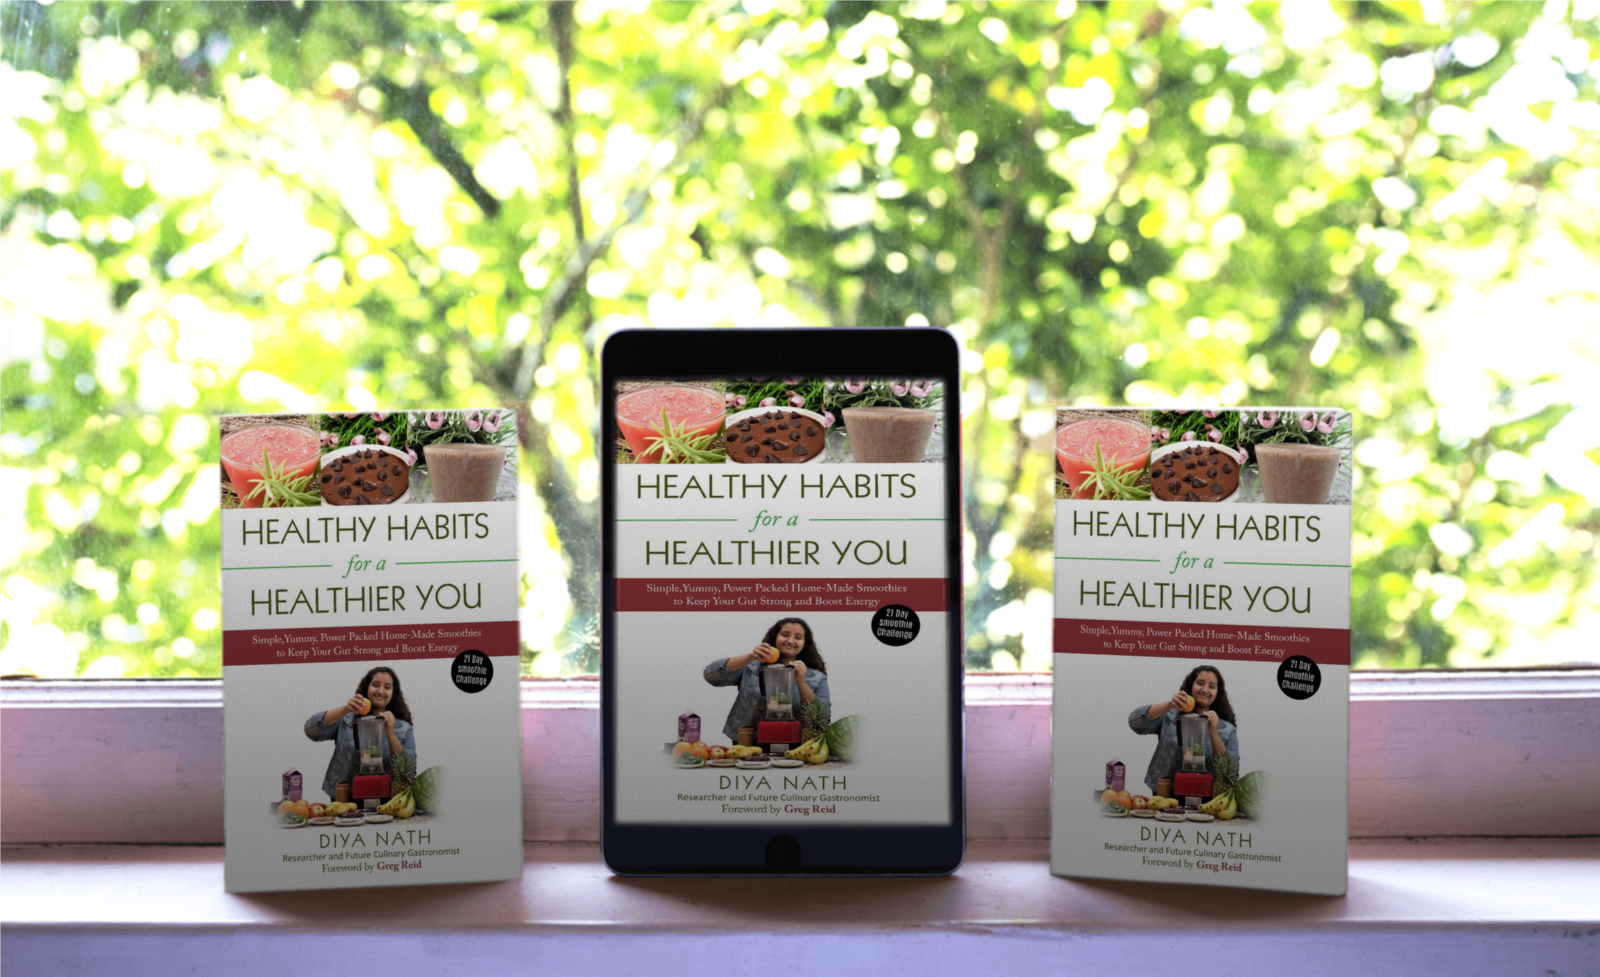 Healthy Habits for a Healthier You tablet, phone, book